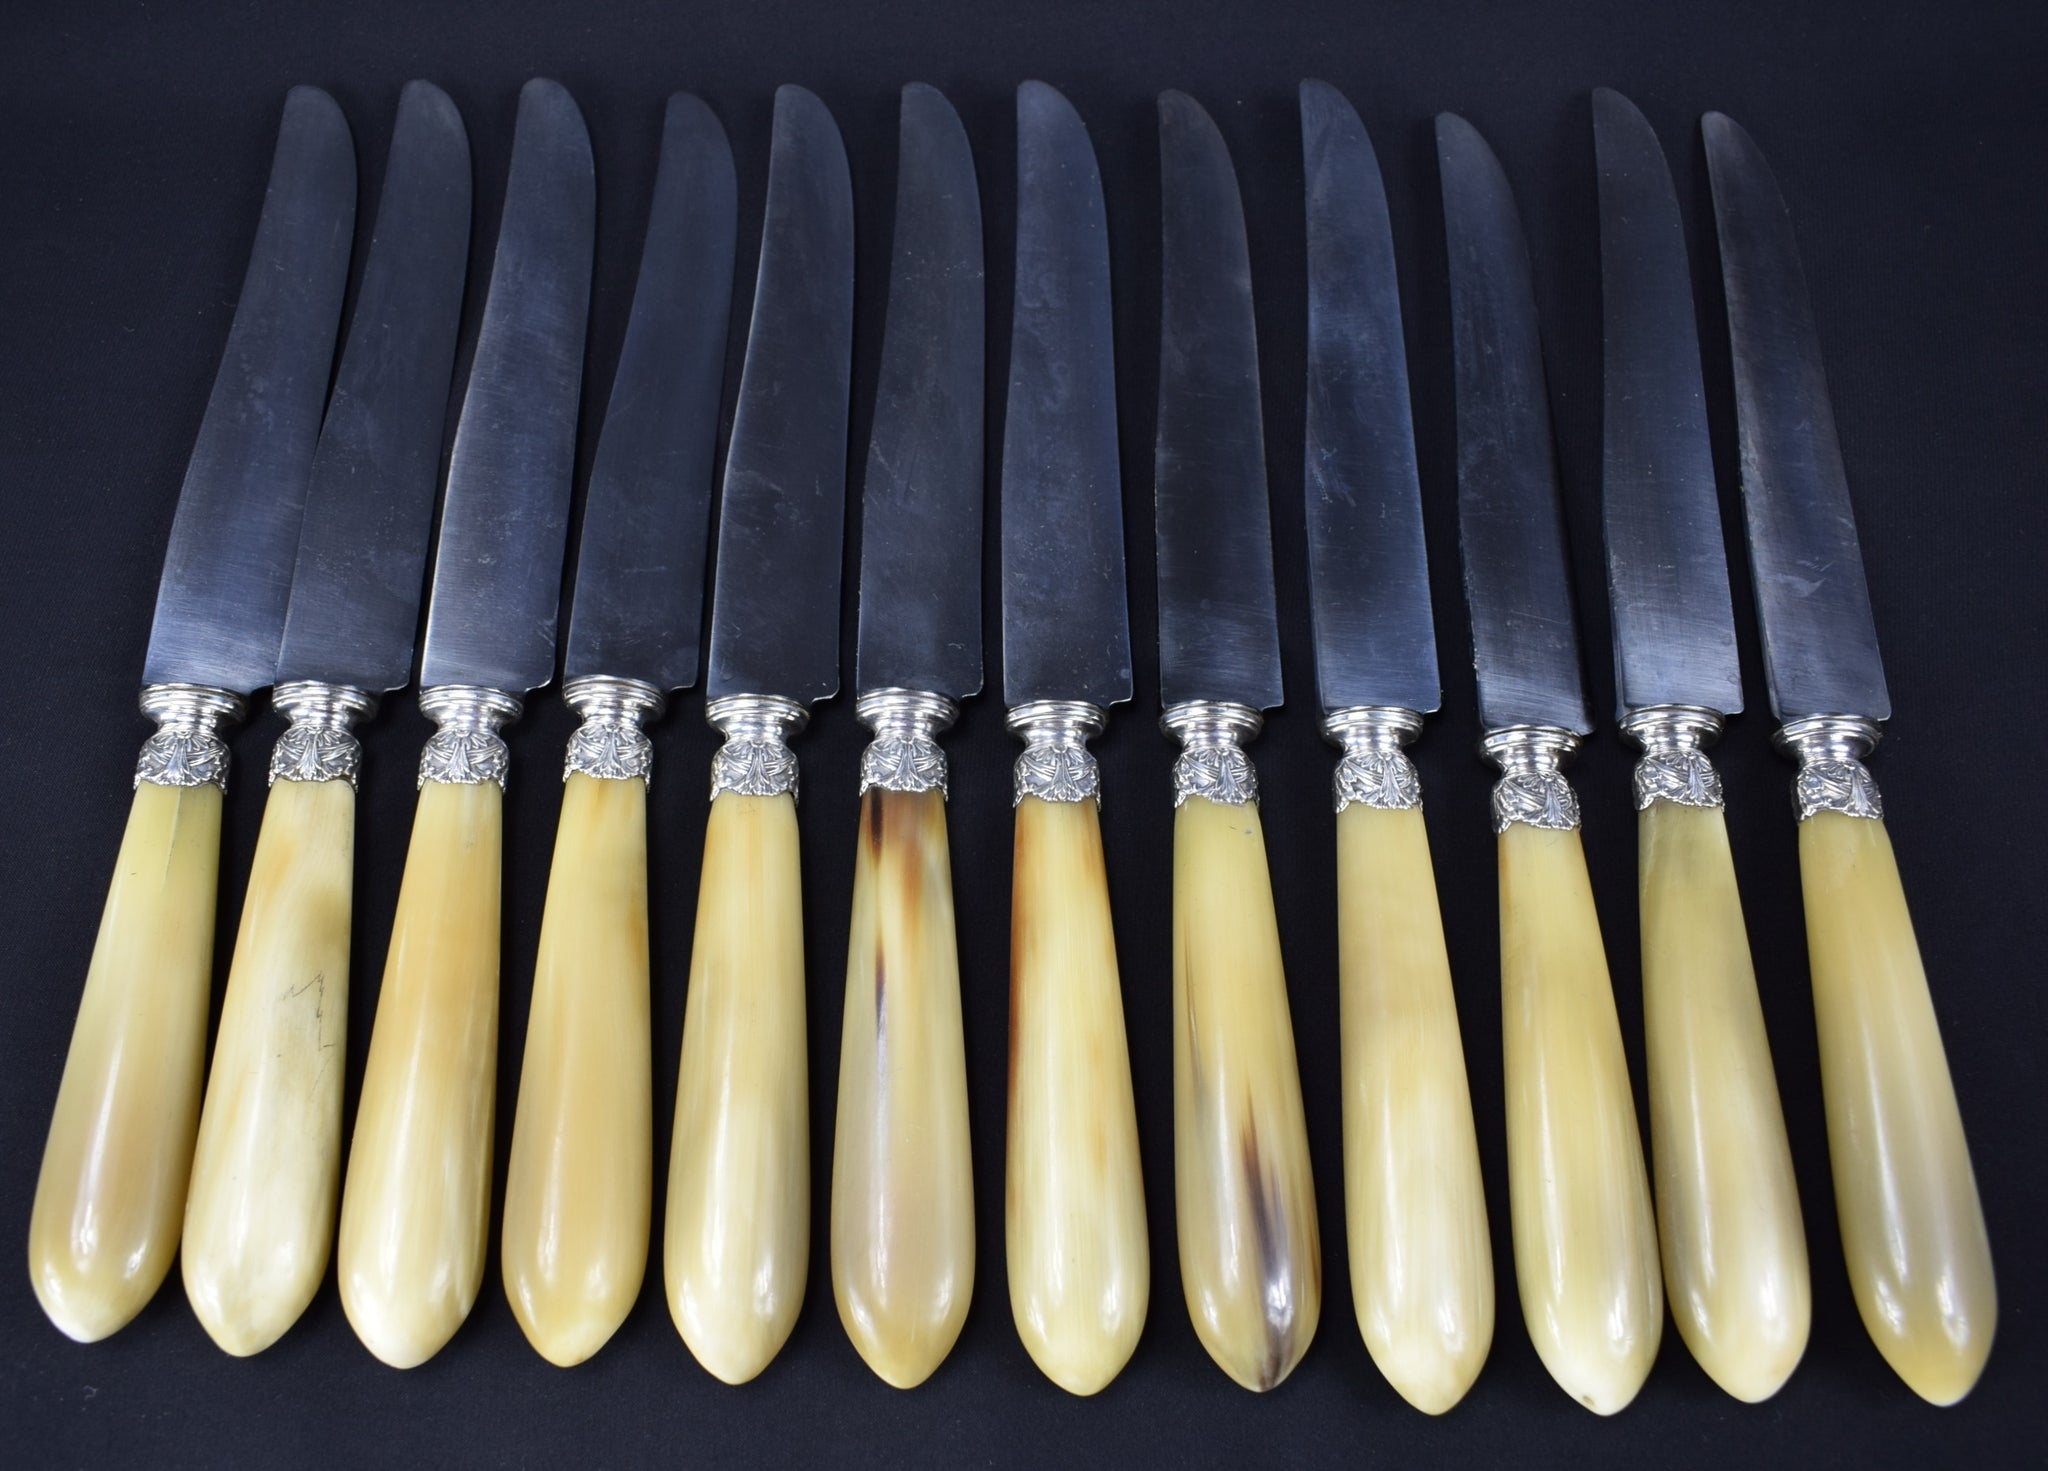 12 Horn & Silver Dinner Knives - Charmantiques